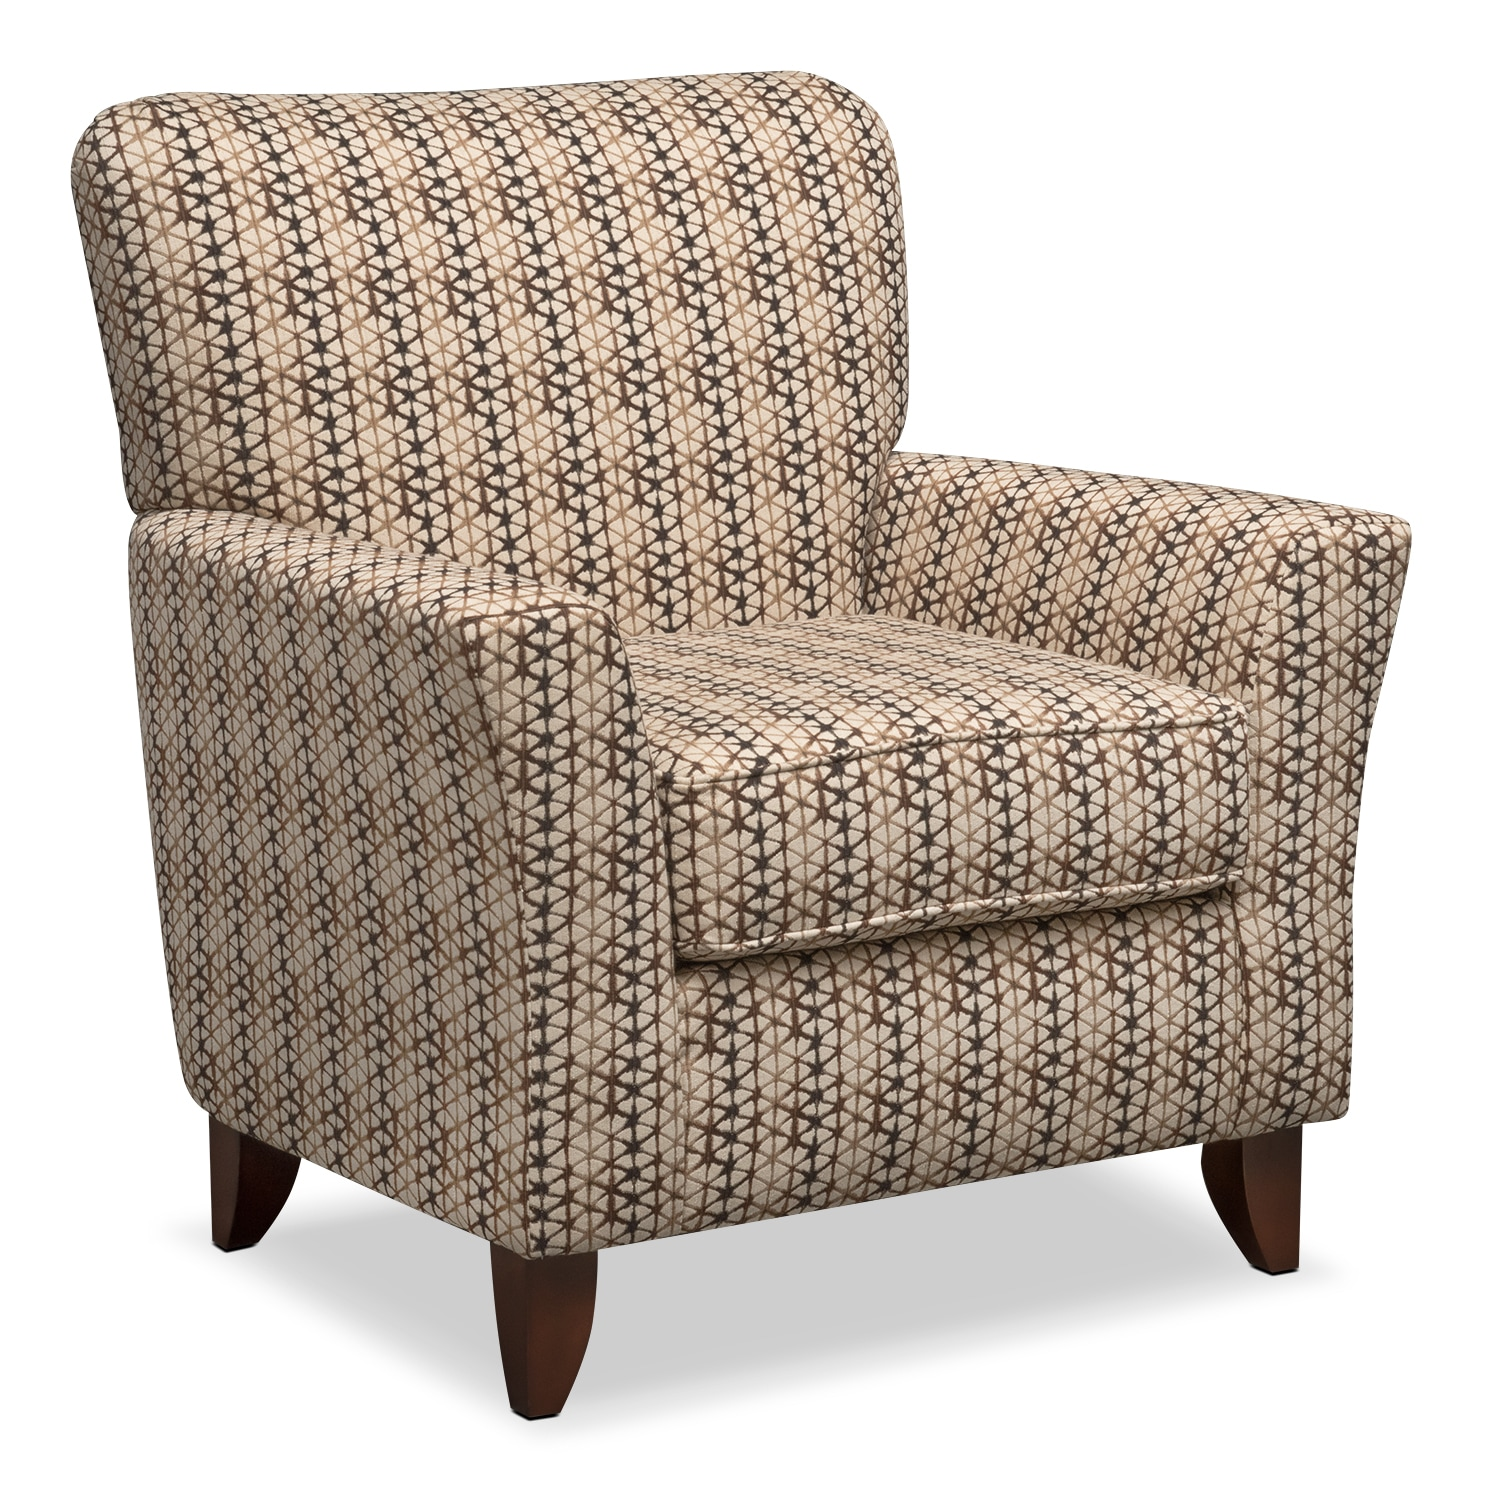 Bryden Accent Chair - Chocolate